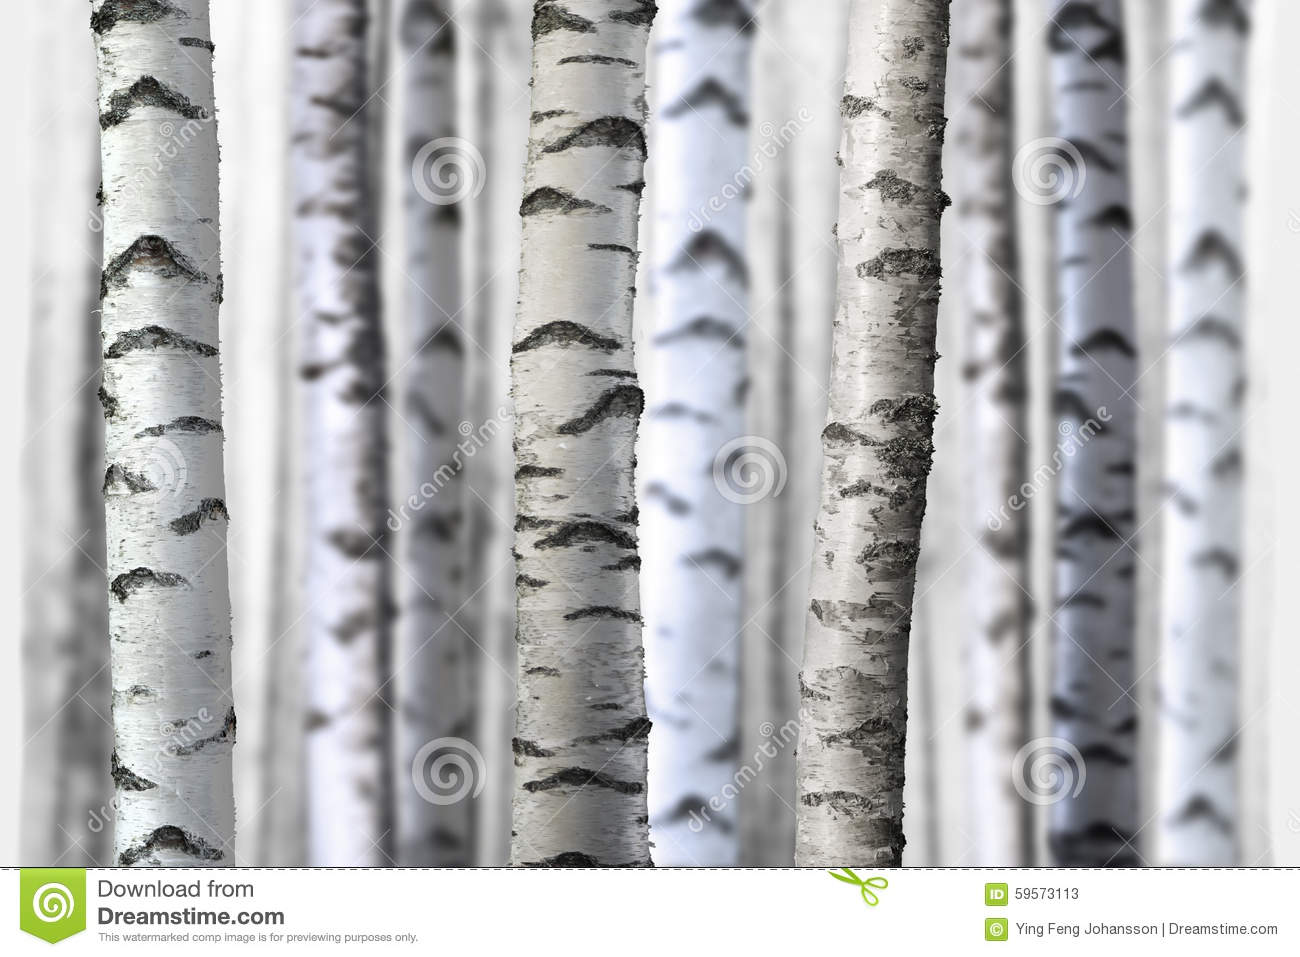 Unique Seamless birch trees stock image. Image of sparse, white - 59573113 BA29